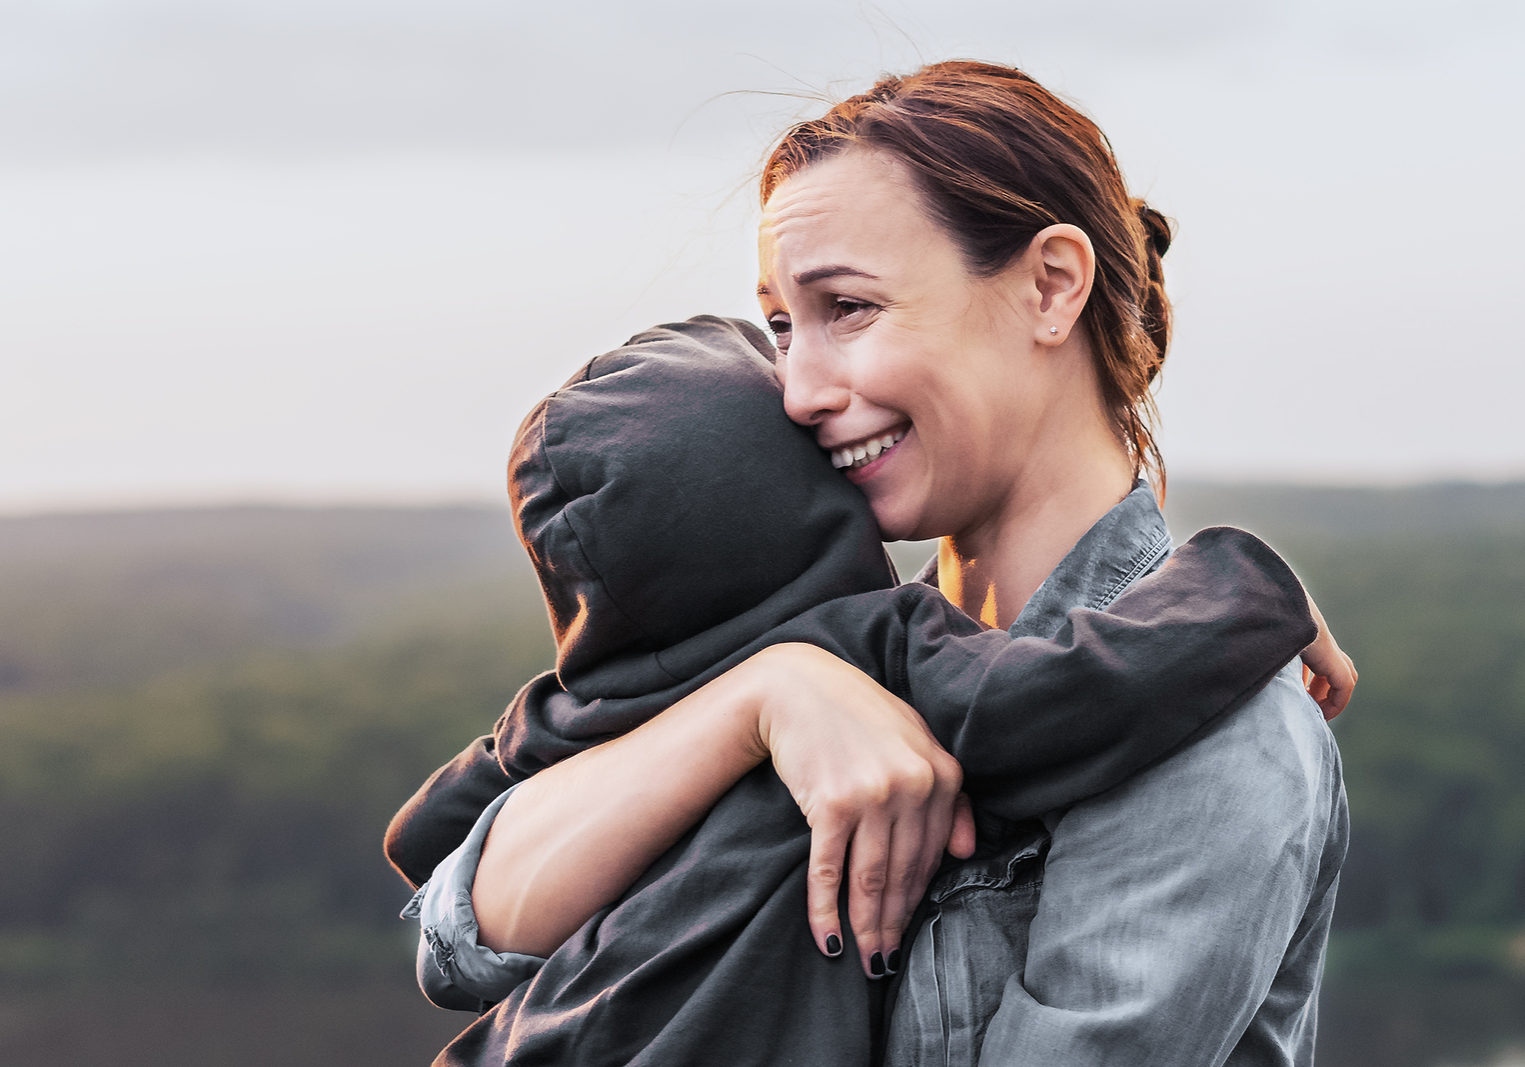 Mom cries and hugs the child. The boy hugs his mother family values sad expression frustration resentment. Caring for the child grief in the family.